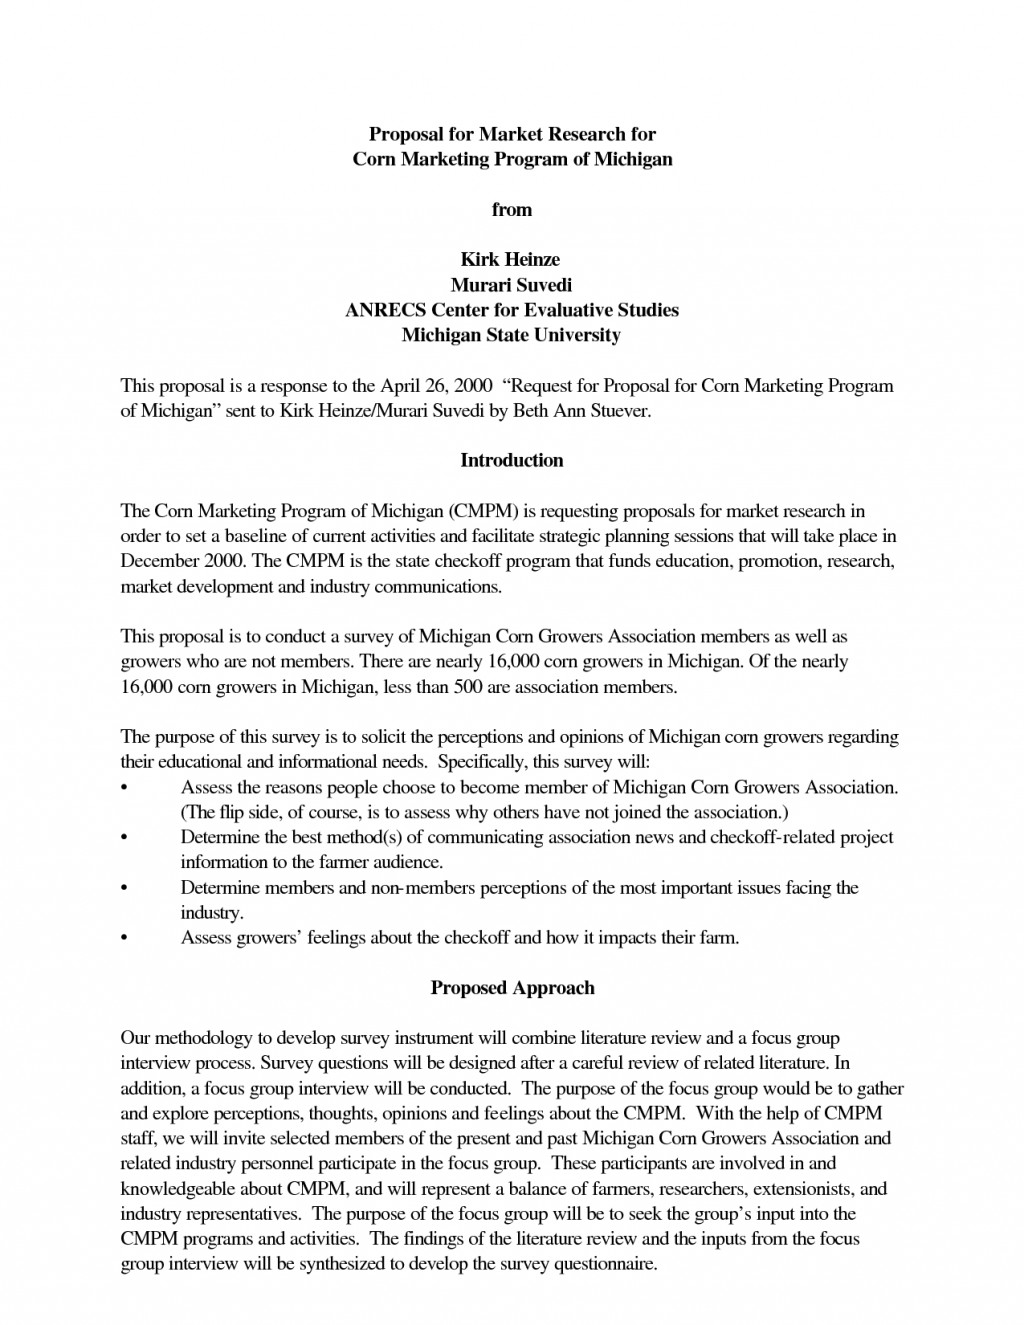 Buy research paper on education popular course work ghostwriter for hire for school